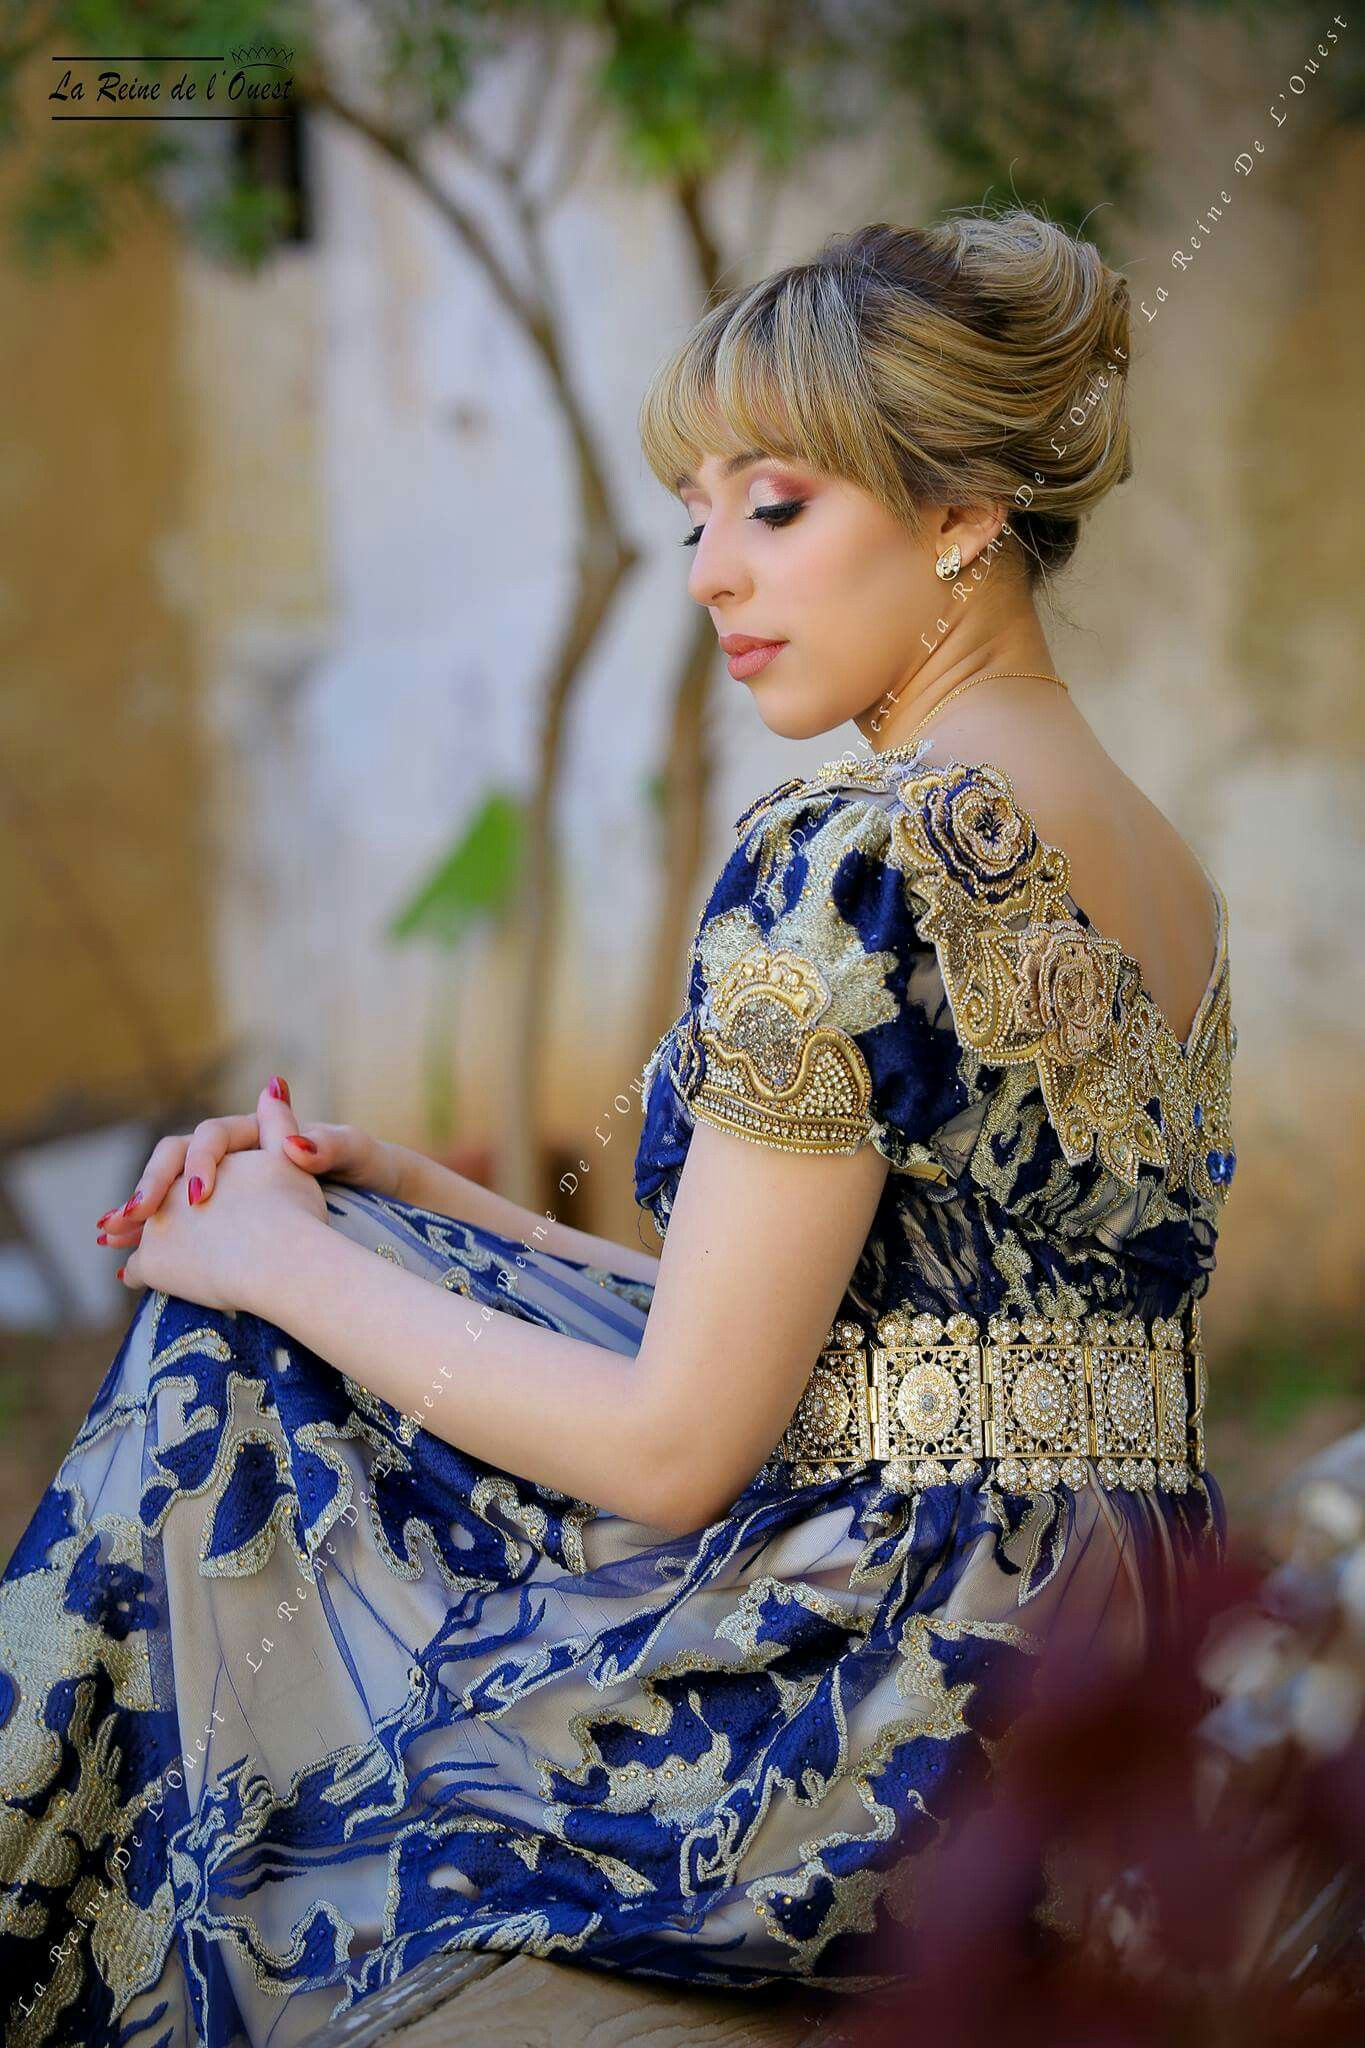 Blouza Oranaise Traditional Algerian Dress From Oran Traditions Algerie Tlemcen Oran Traditional Dresses Traditional Outfits Elegant Fashion